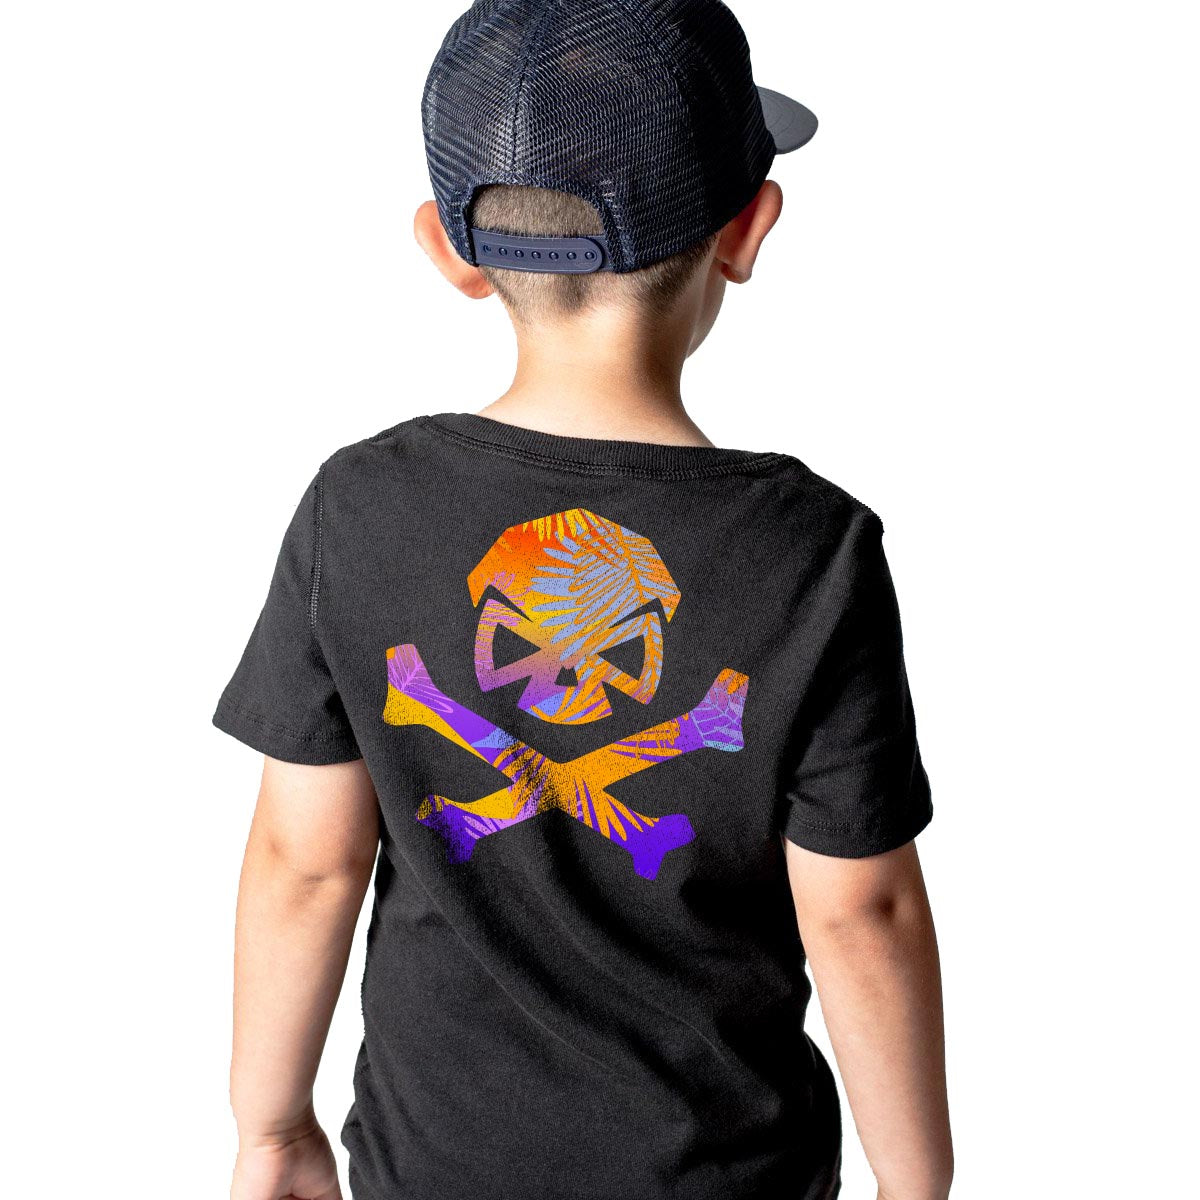 Hitter Five-0 - Youth - Black/Orange - T-Shirts - Pipe Hitters Union